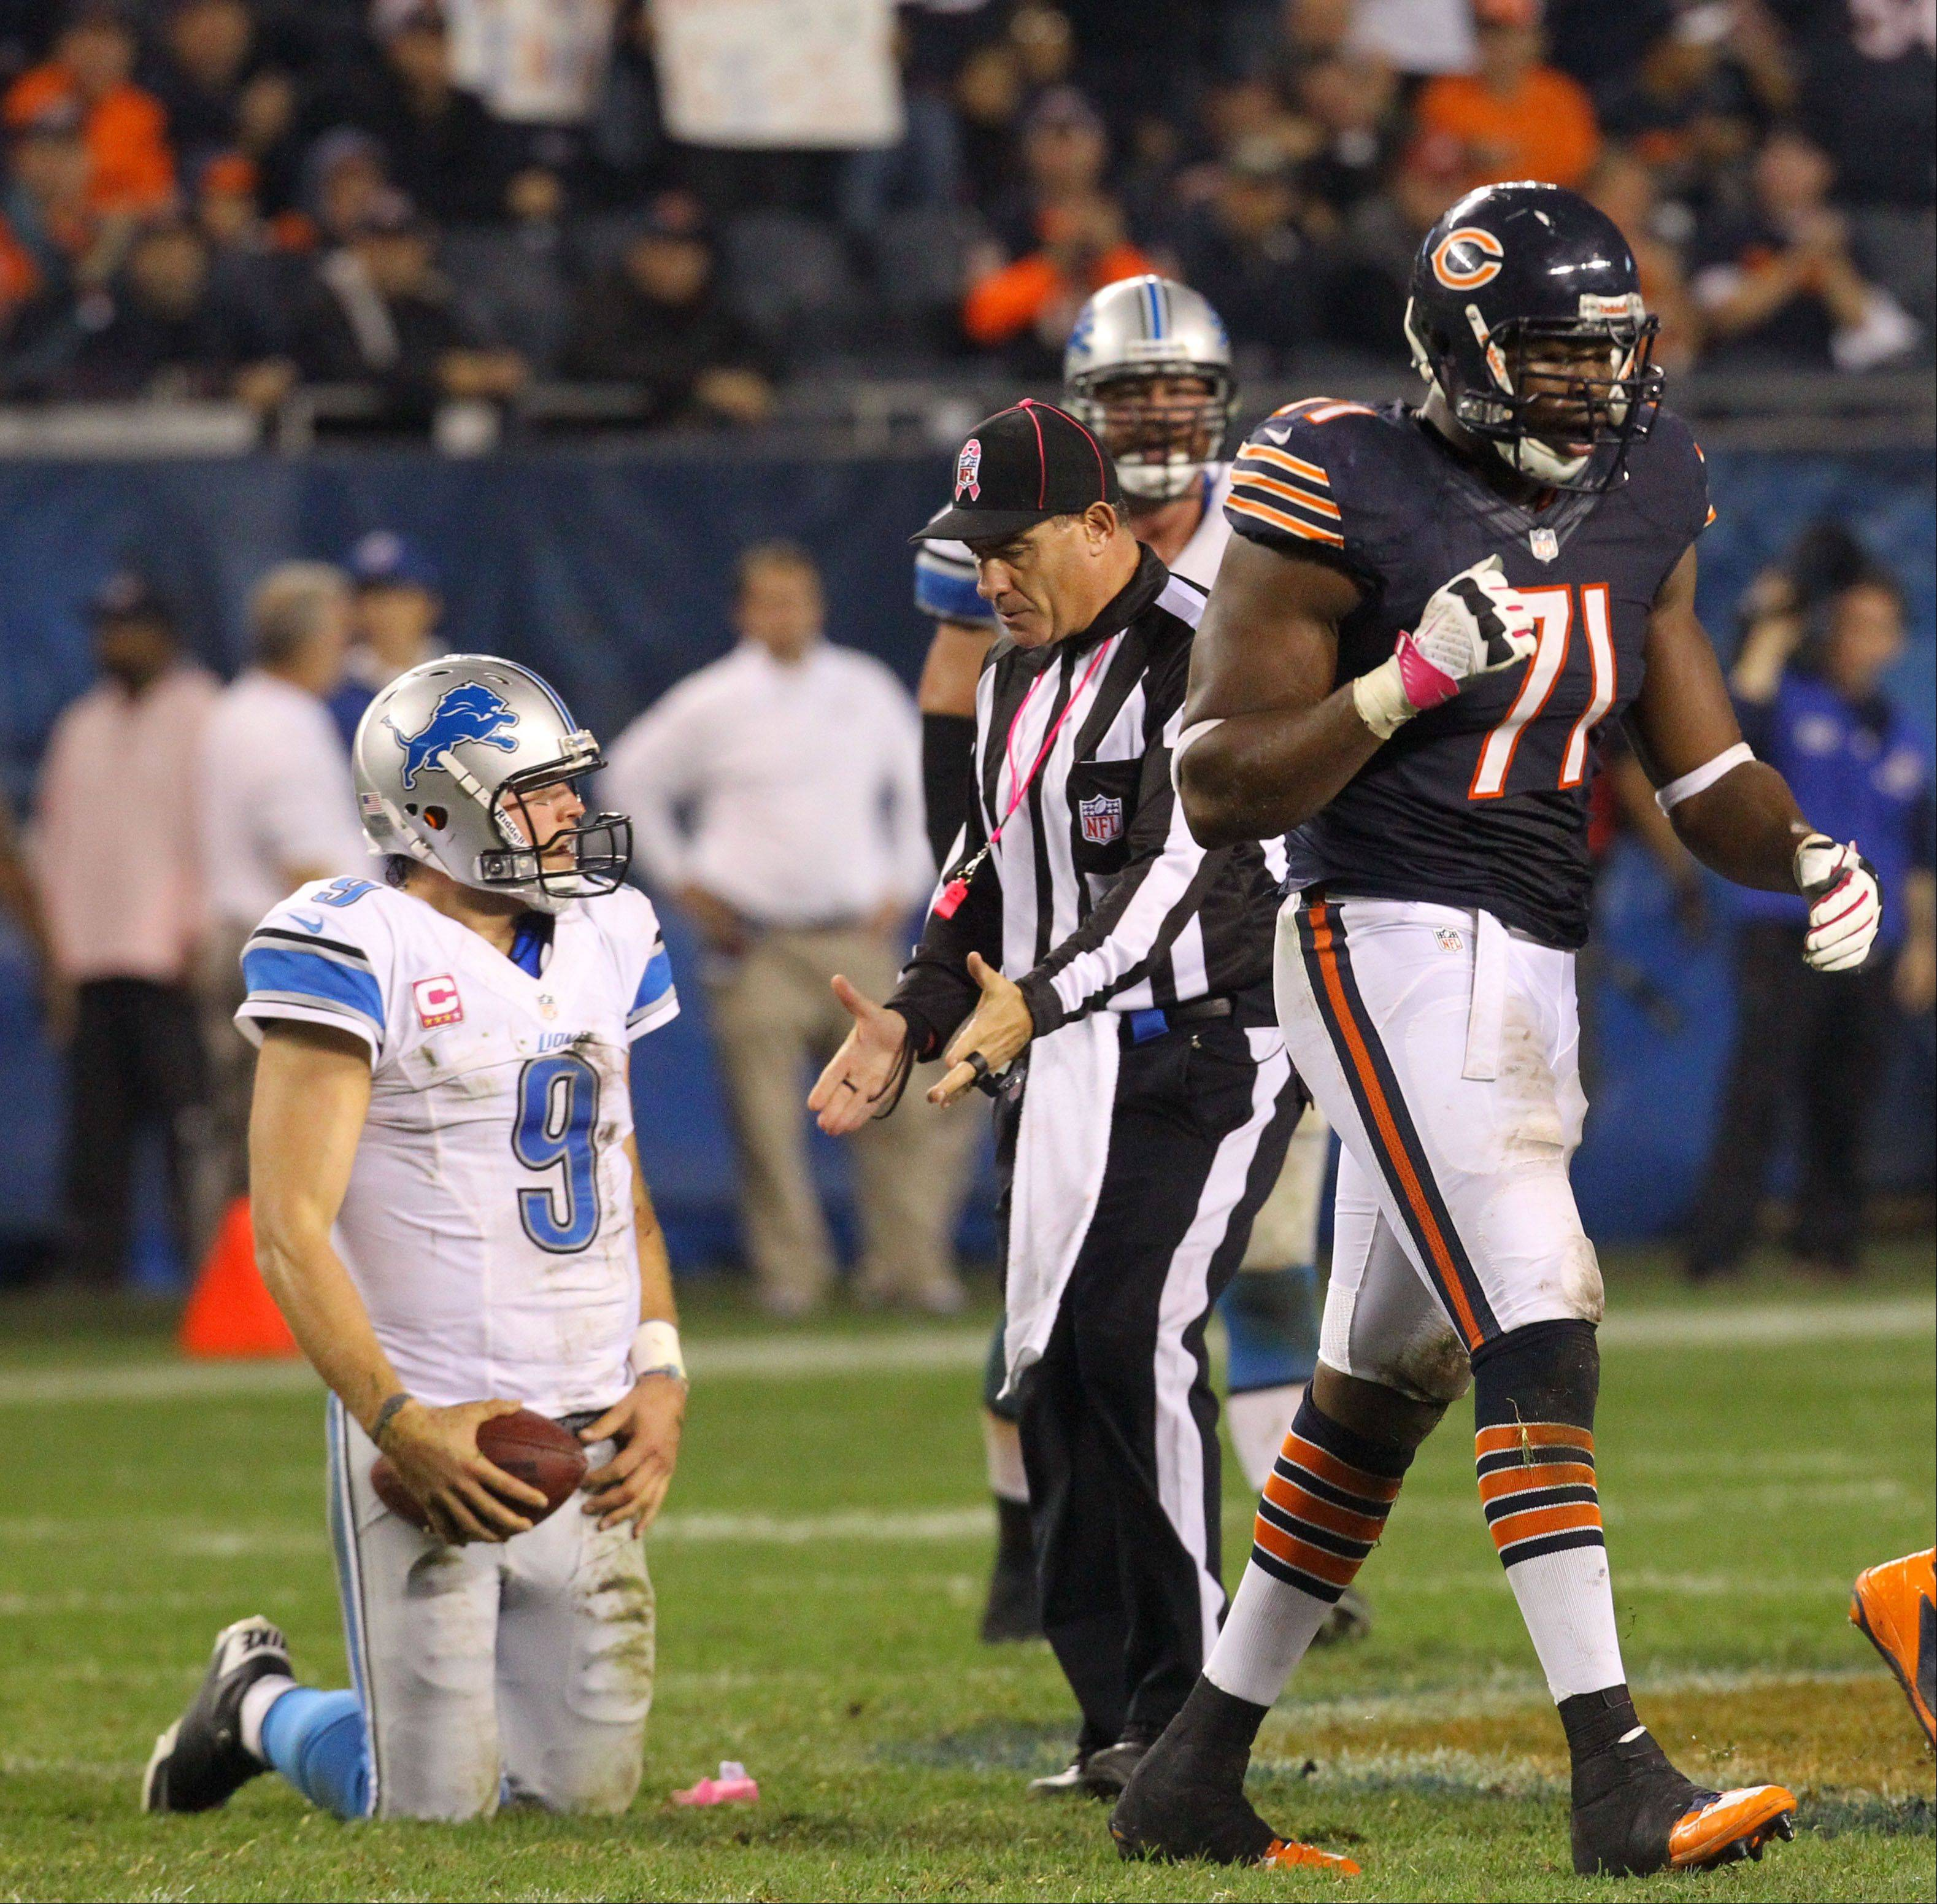 Chicago Bears defensive end Israel Idonije celebrates after sacking Detroit Lions quarterback Matthew Stafford.